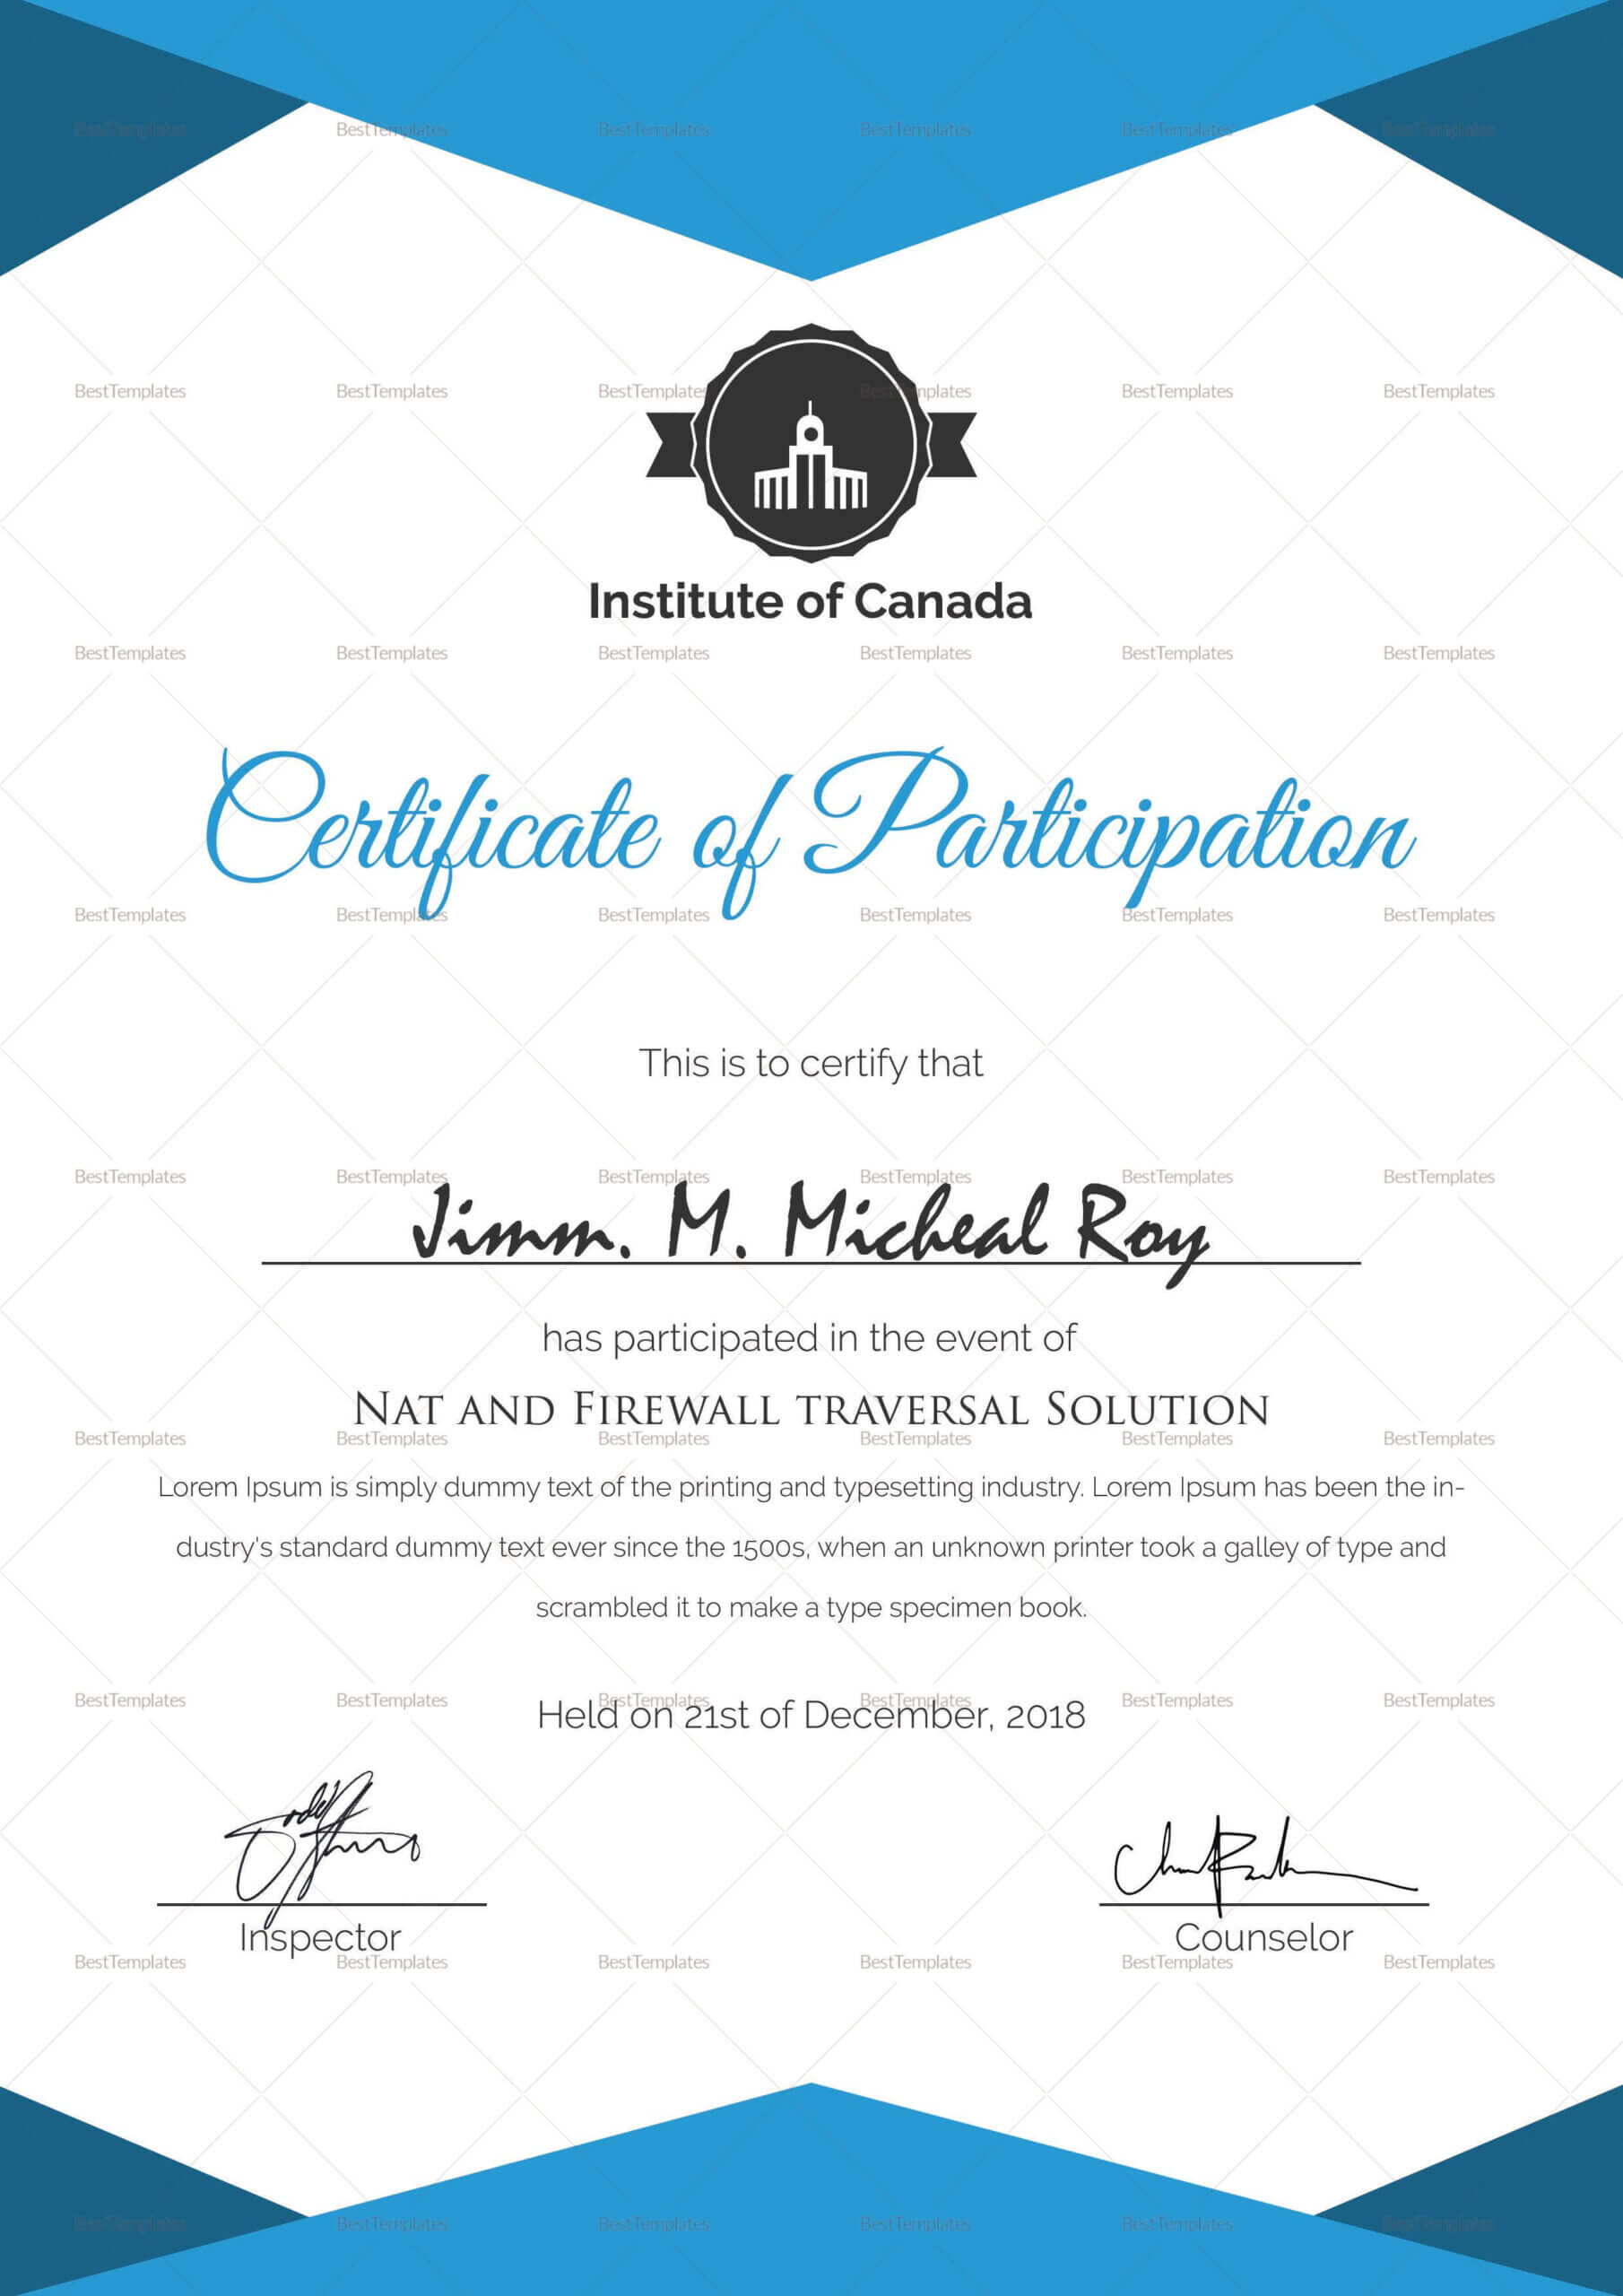 Sample Certificate Of Participation Template | Certificate Intended For Sample Certificate Of Participation Template